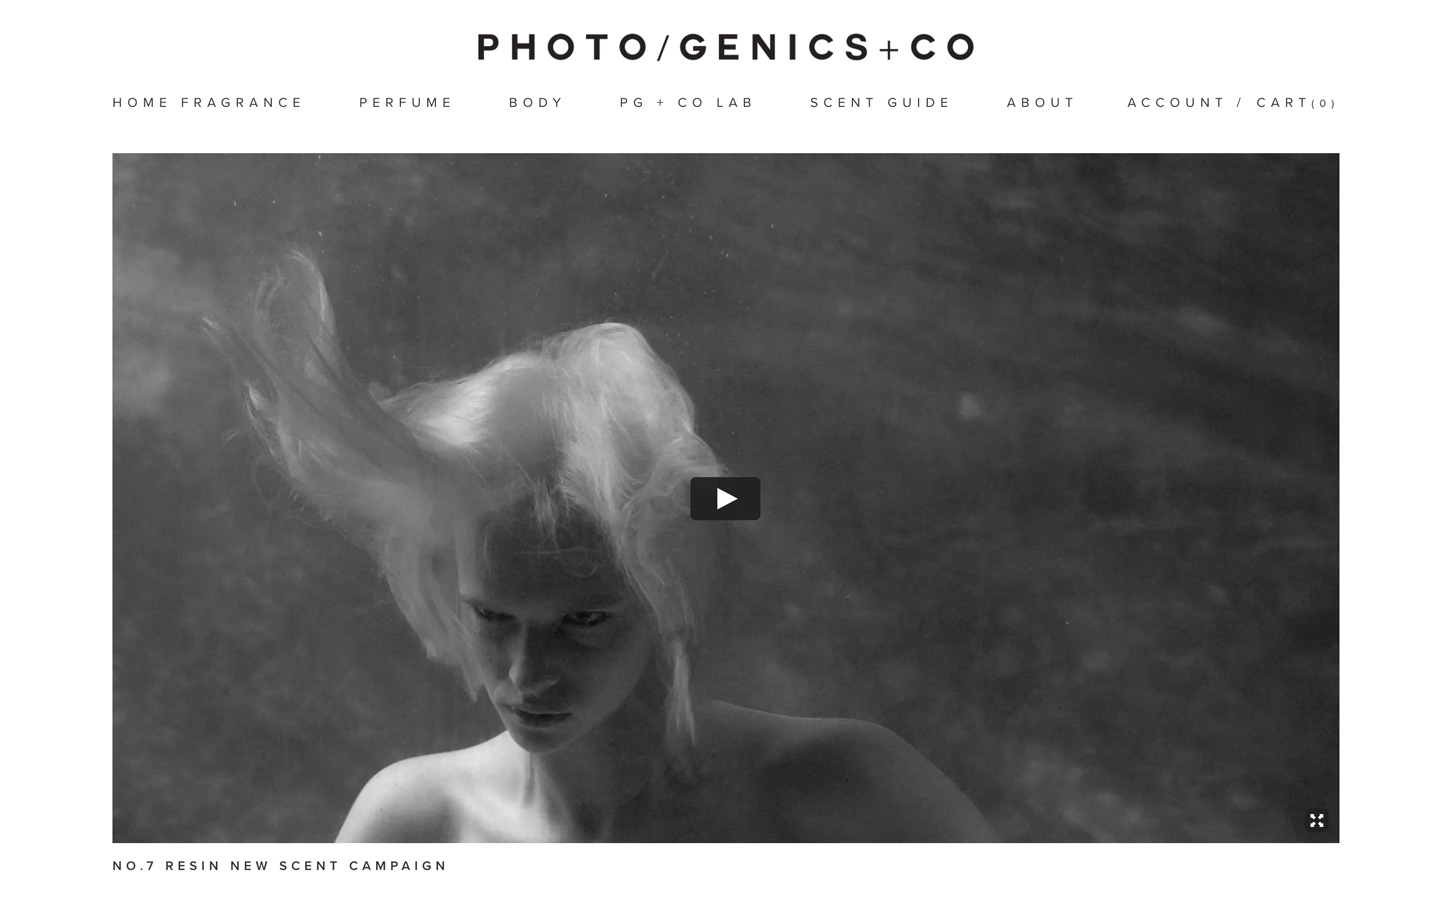 Jeremy Schuler - Web Design - Photogenics + CO